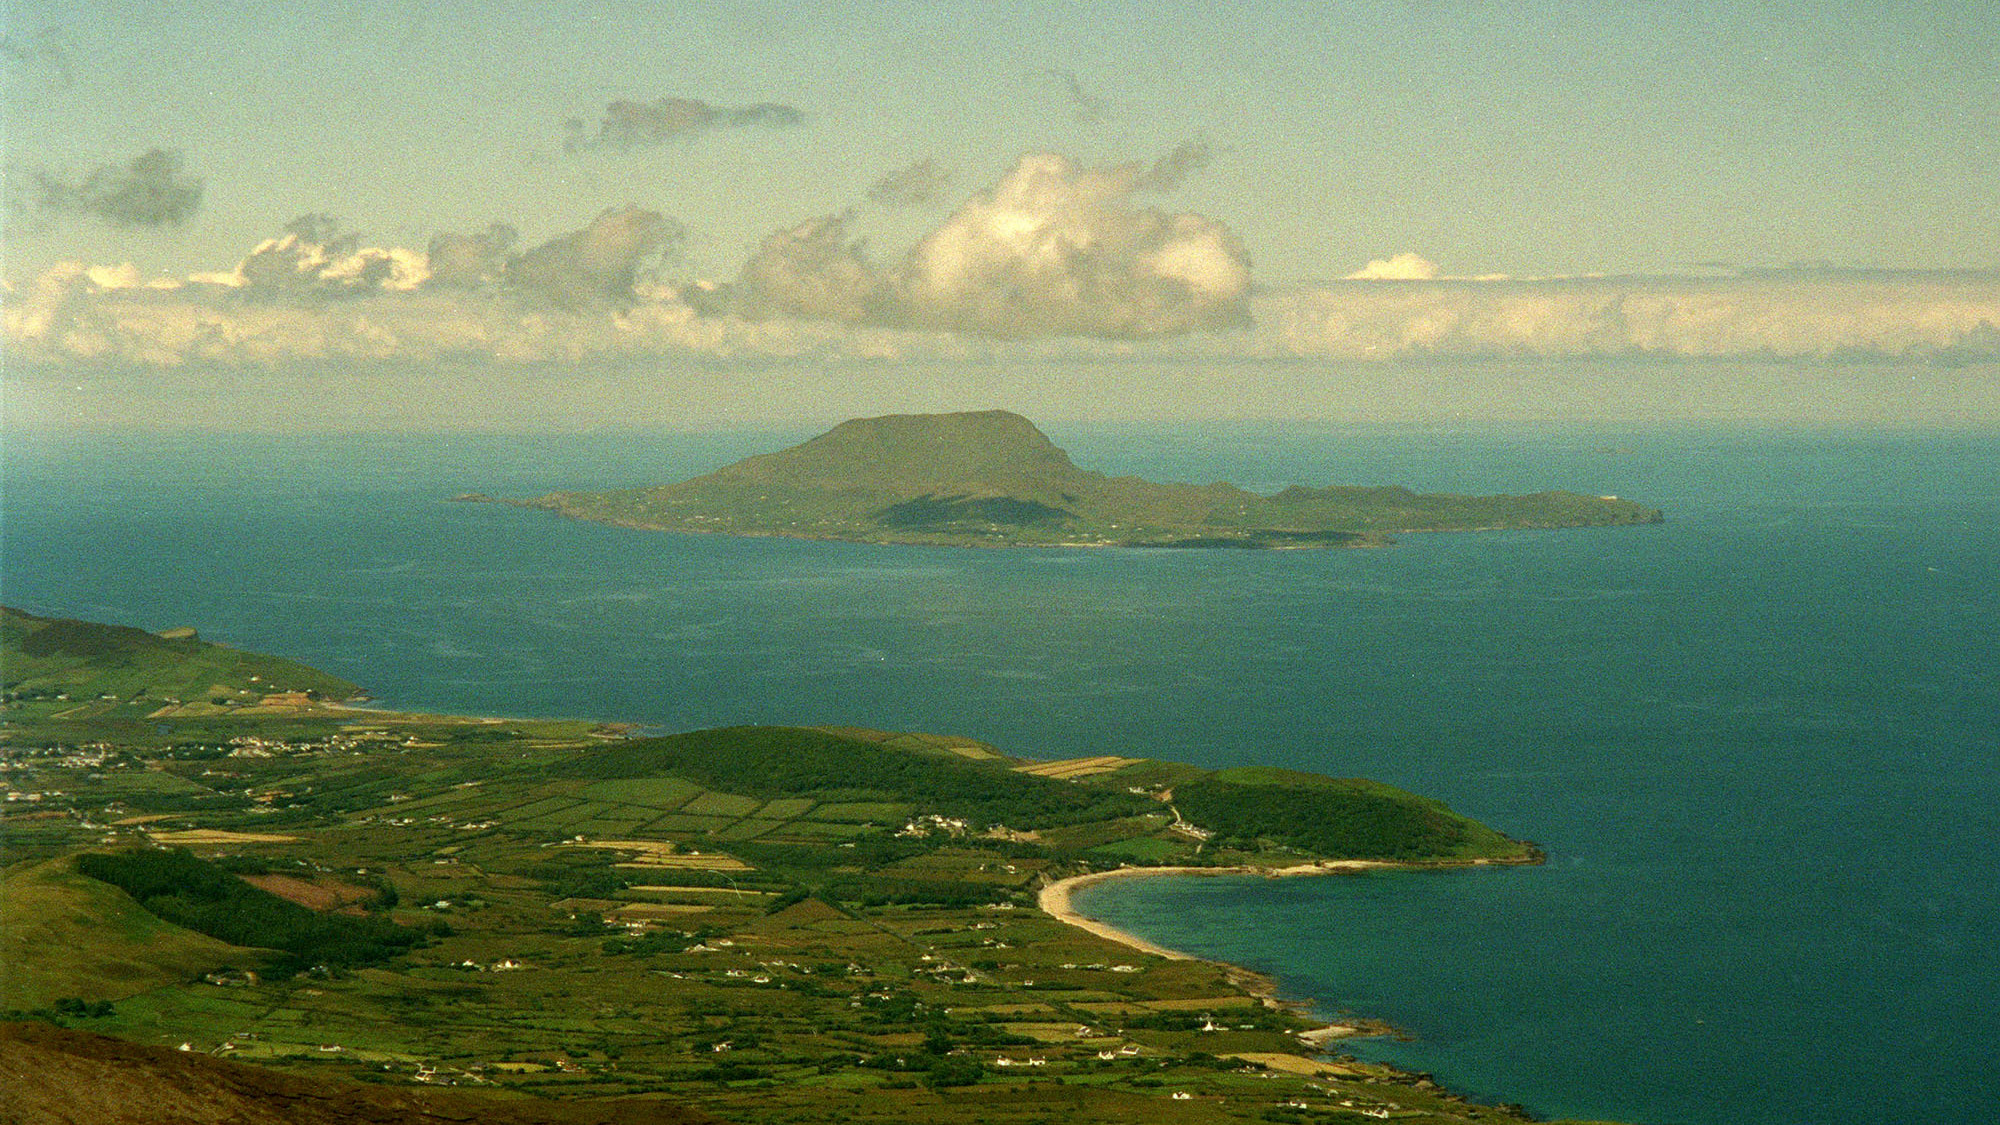 The view from a peak in County Mayo, Ireland. An island off the coast is inviting any Americans afraid of the election results to move there, and grow their population. David Pace/AP